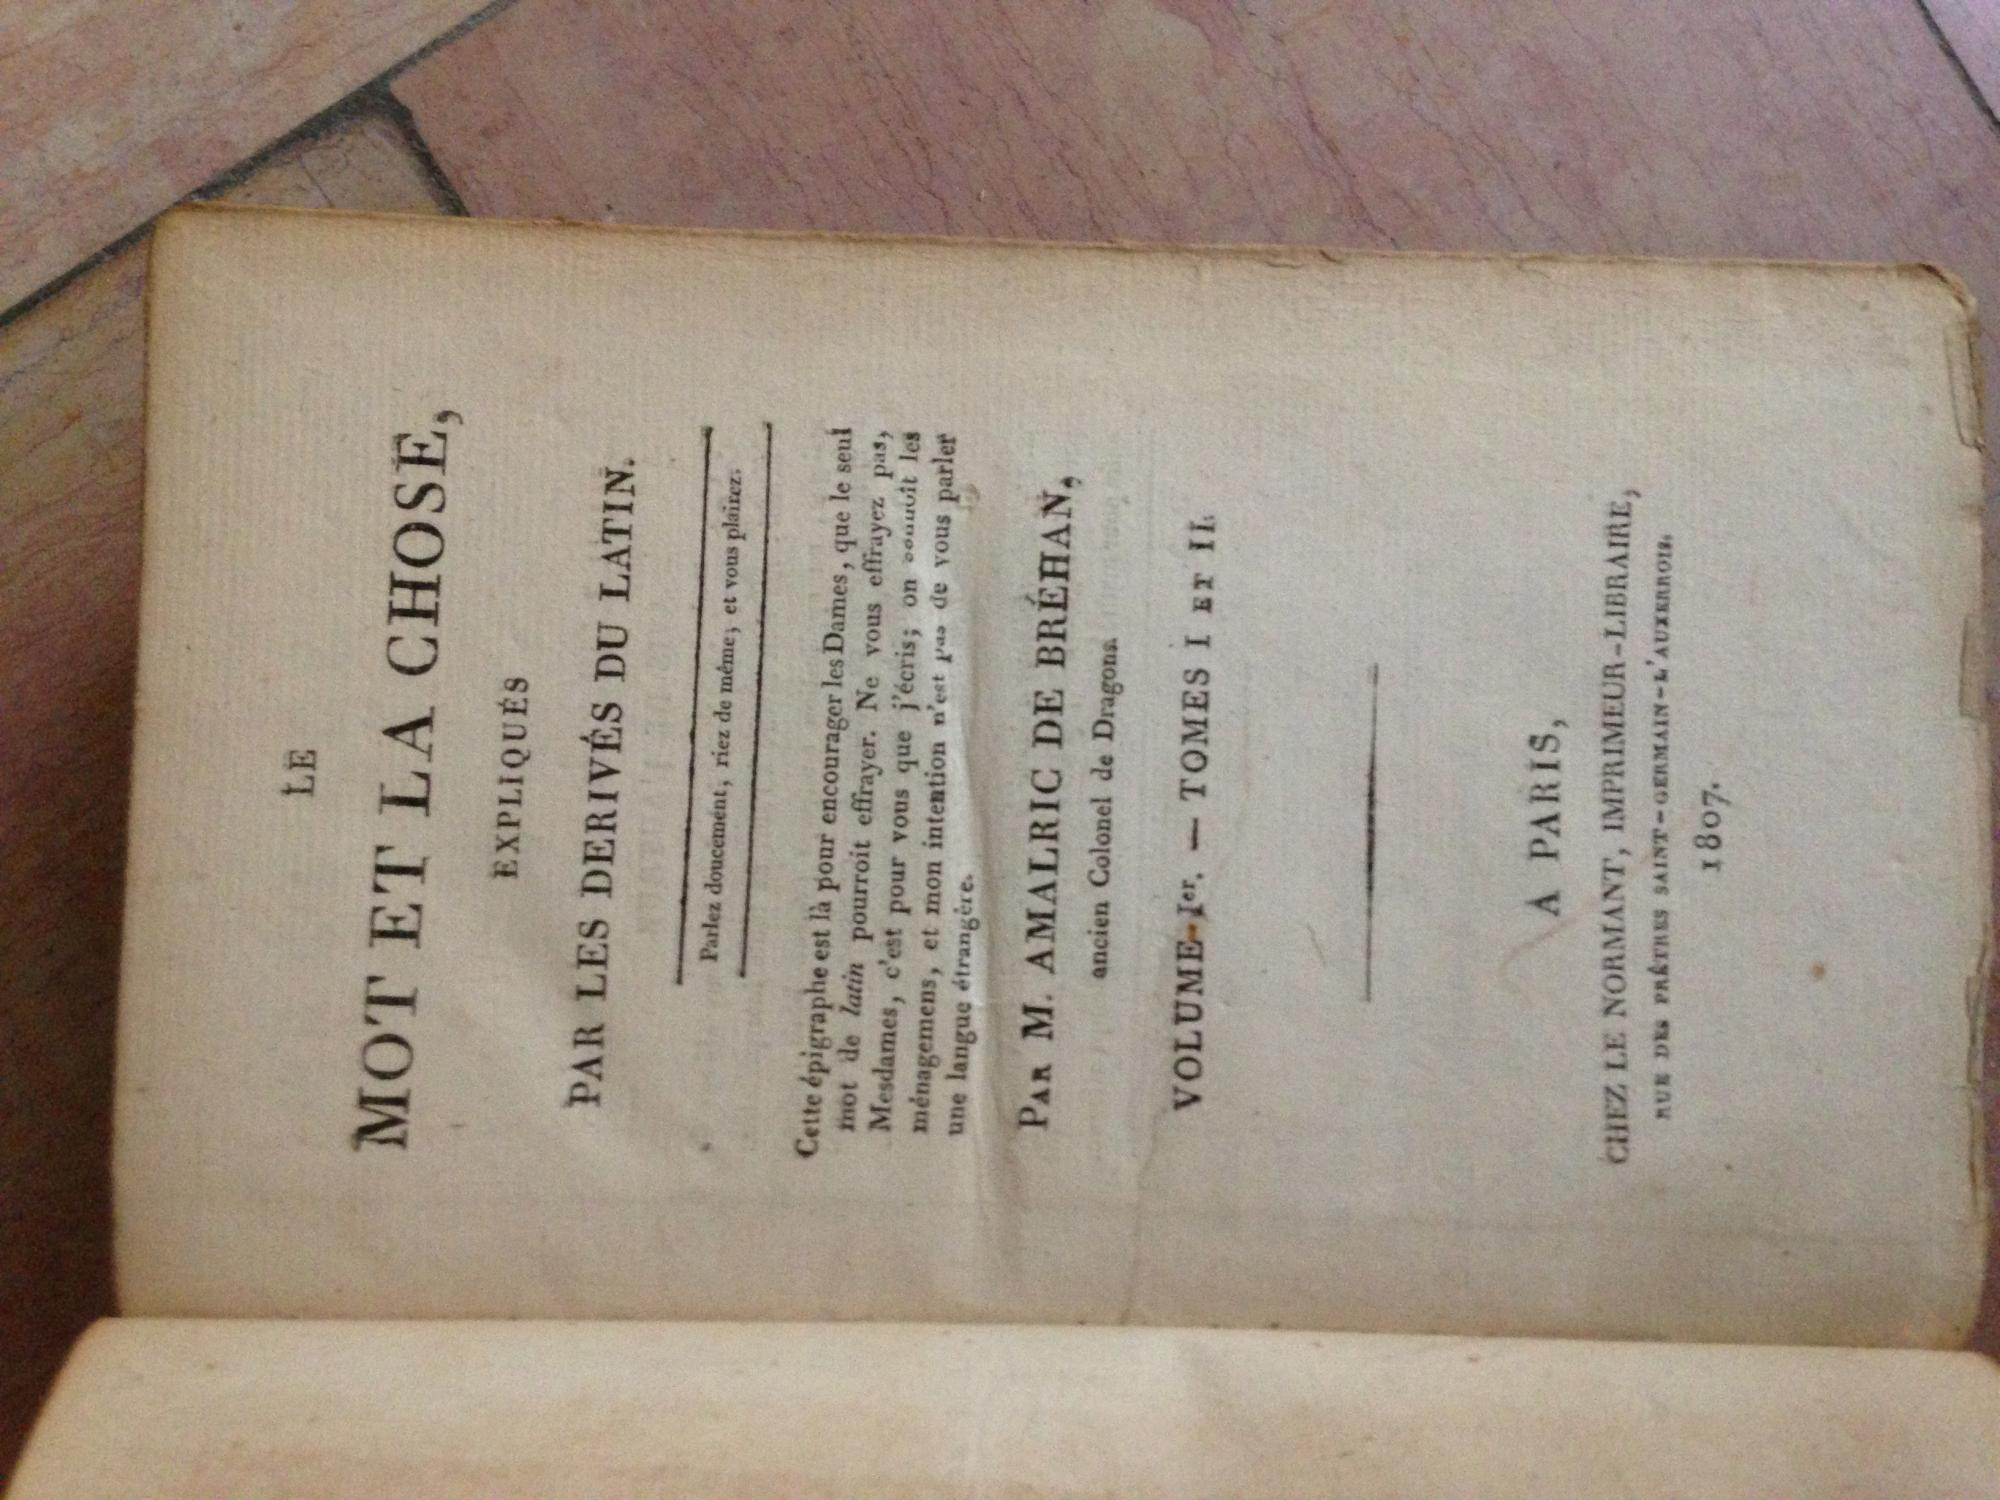 Tipi Pour Chat A Fabriquer vialibri ~ rare books from 1807 - page 24